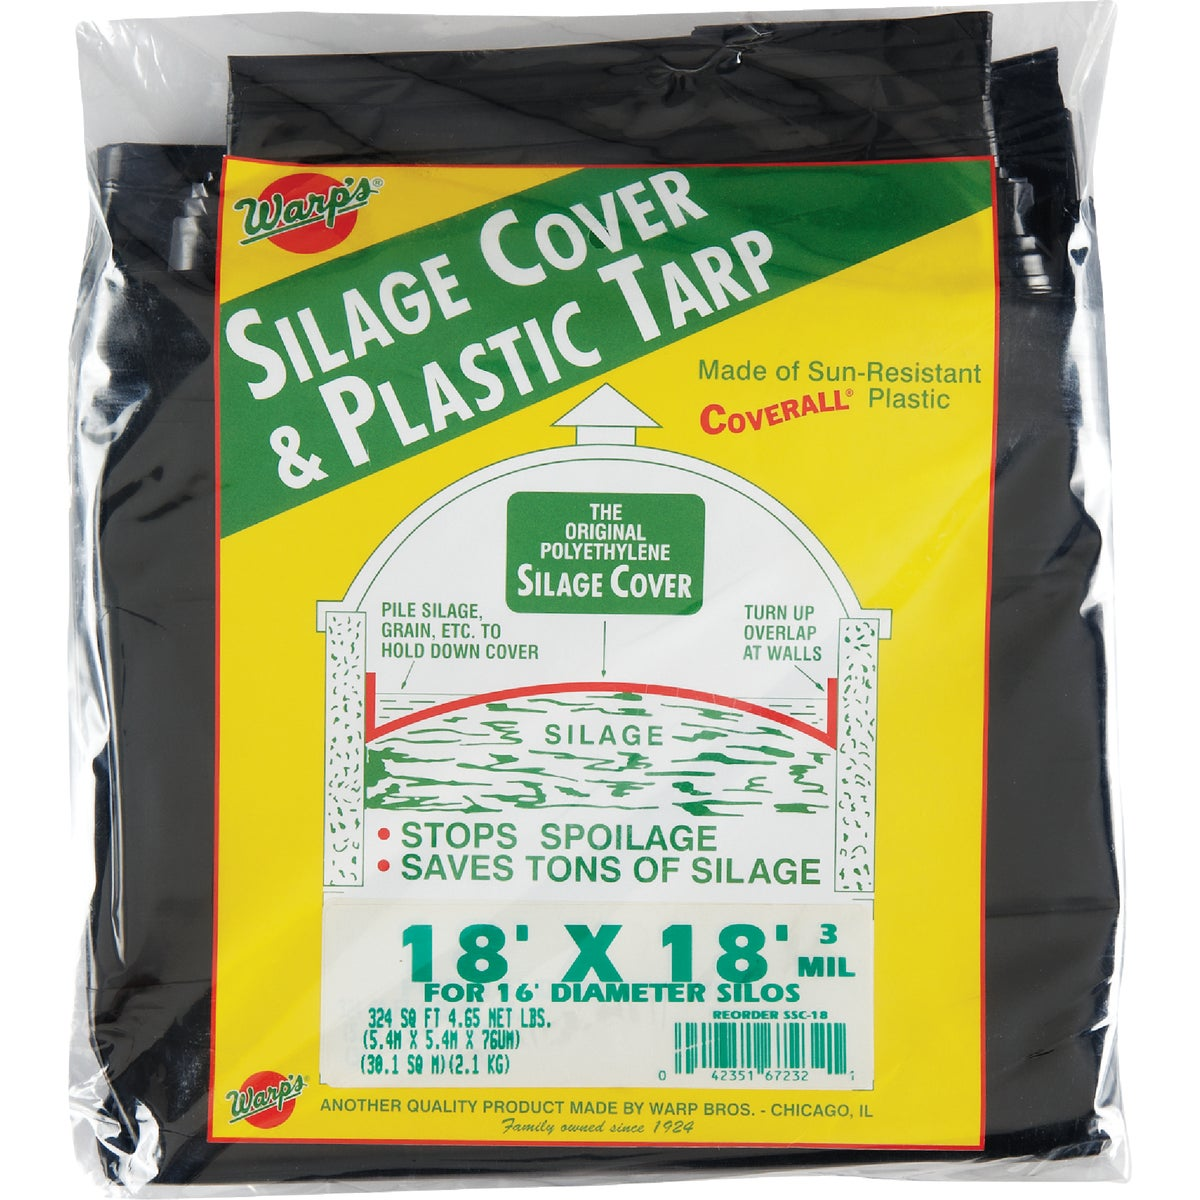 18X18 SILAGE COVER